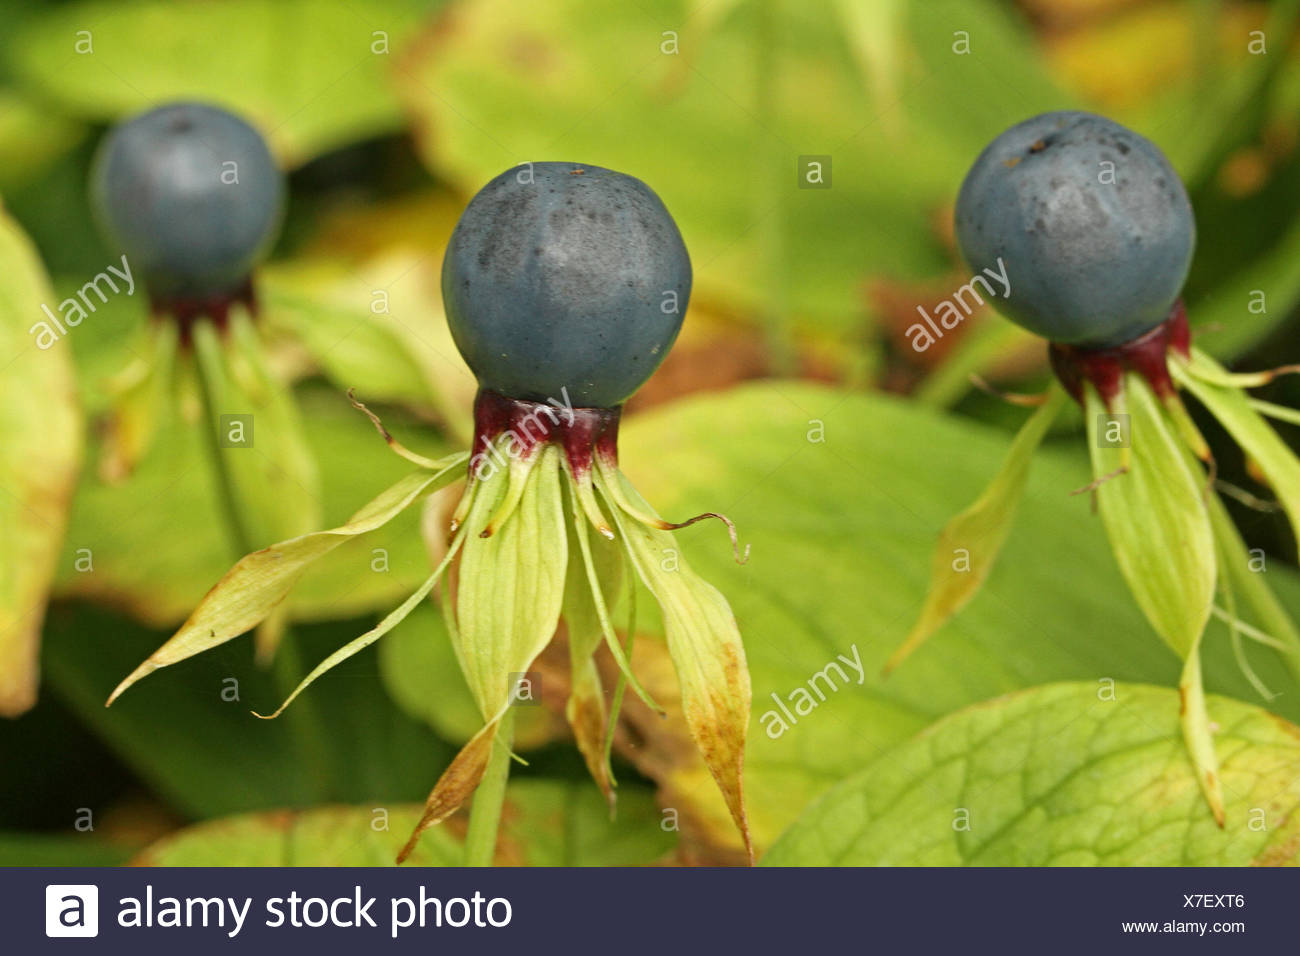 Herb Paris Plants With Berries Stock Photo 279996870 Alamy